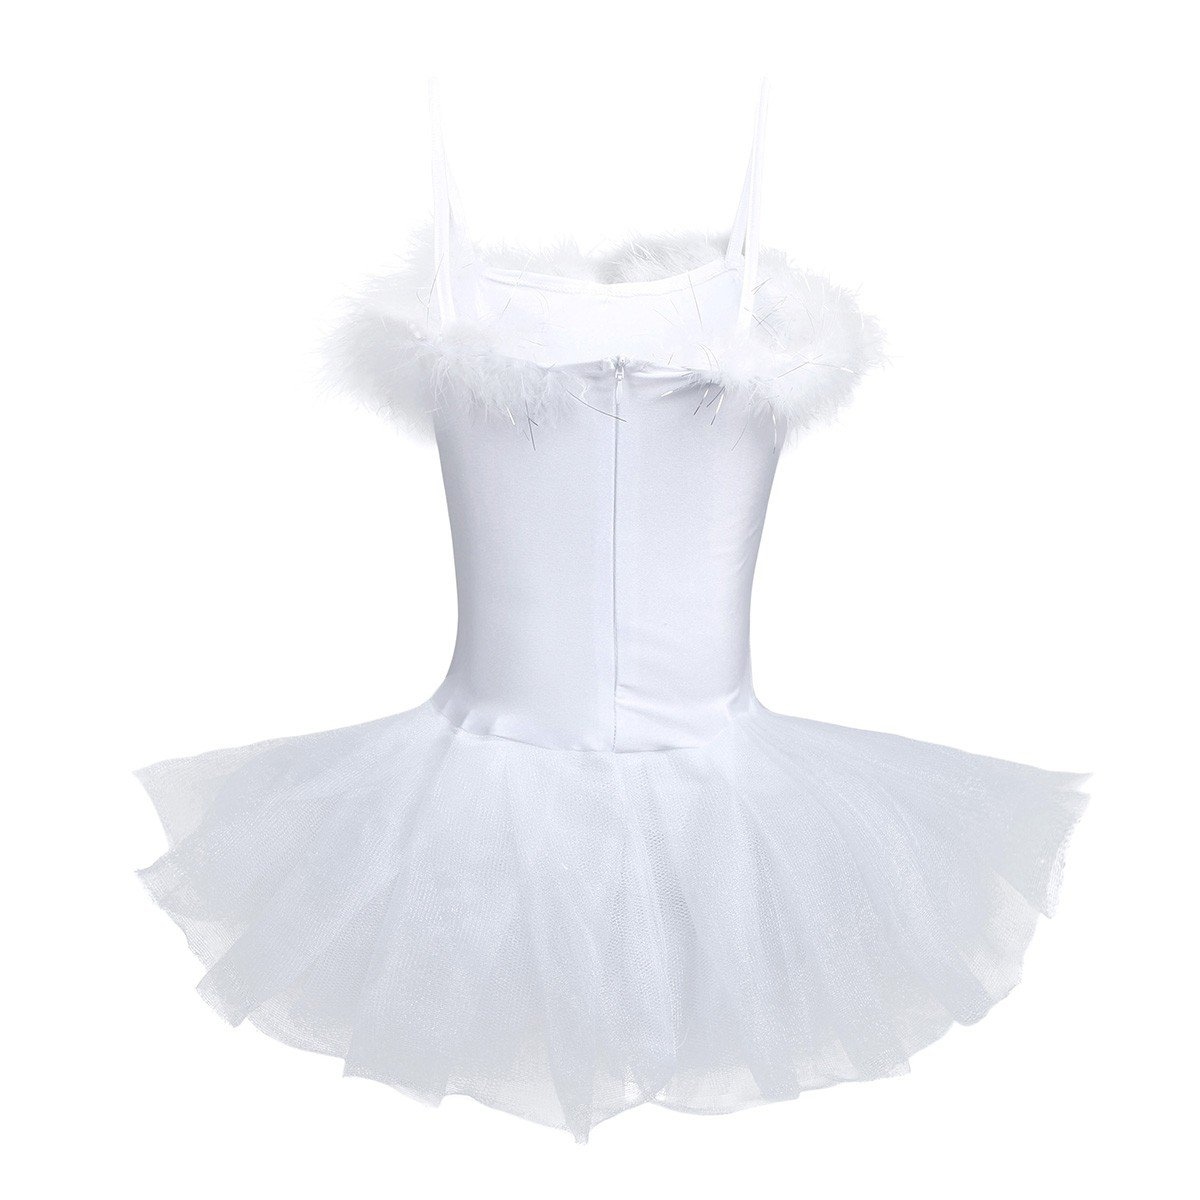 TiaoBug Girls Sequined Beads Swan Ballet Dance Leotard Spaghtetti Tutu  Dress Costume with Gloves Hair Clip White 4-5   Dance   Sports   Outdoors -  tibs 28a5ebce8132